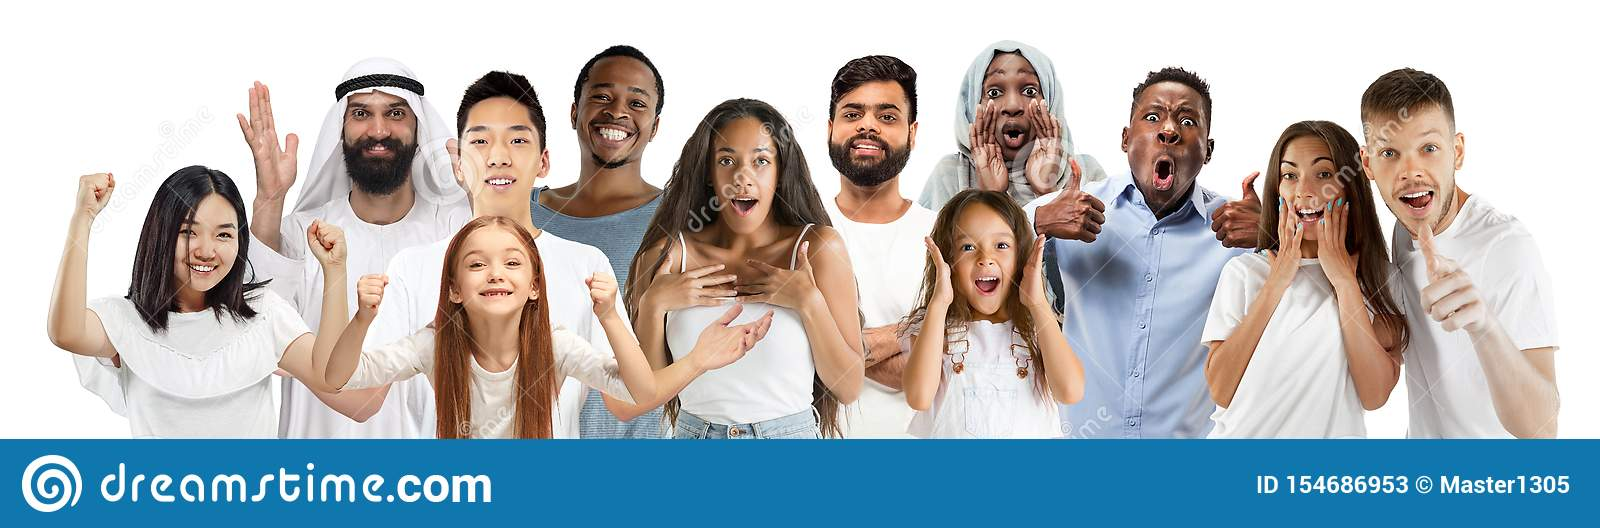 Portrait of young people looks astonished and happy on white background